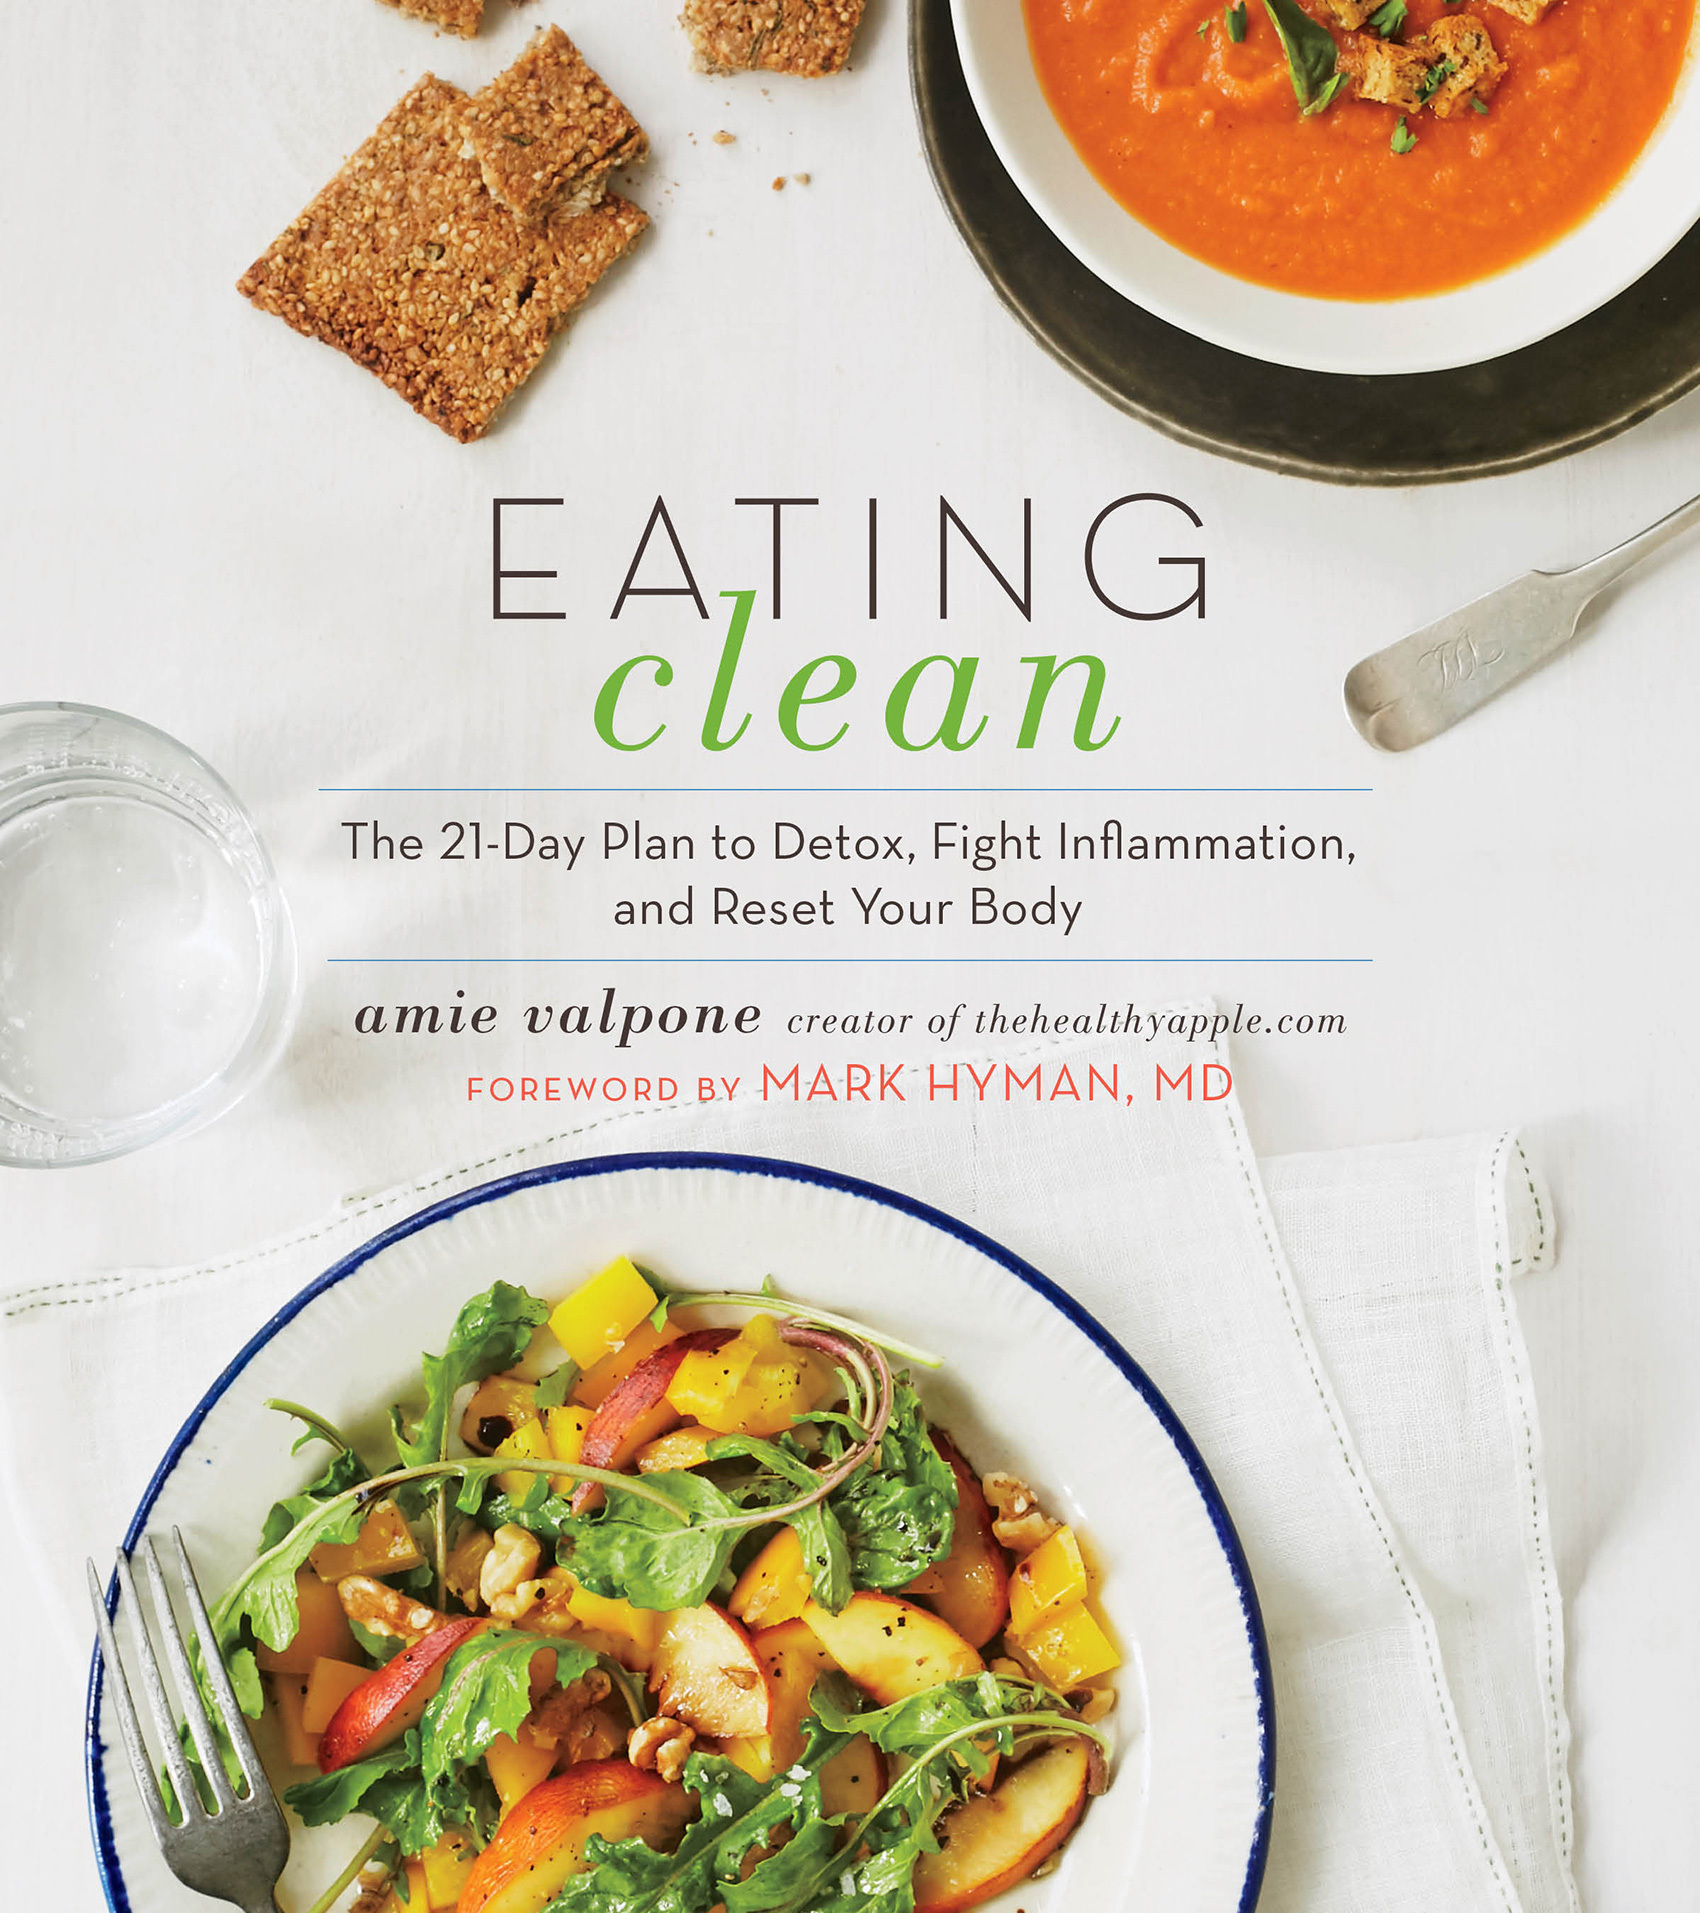 Eating Clean: The 21-Day Plan to Detox, Fight Inflammation, and Reset Your Body  by  Amie Valpone